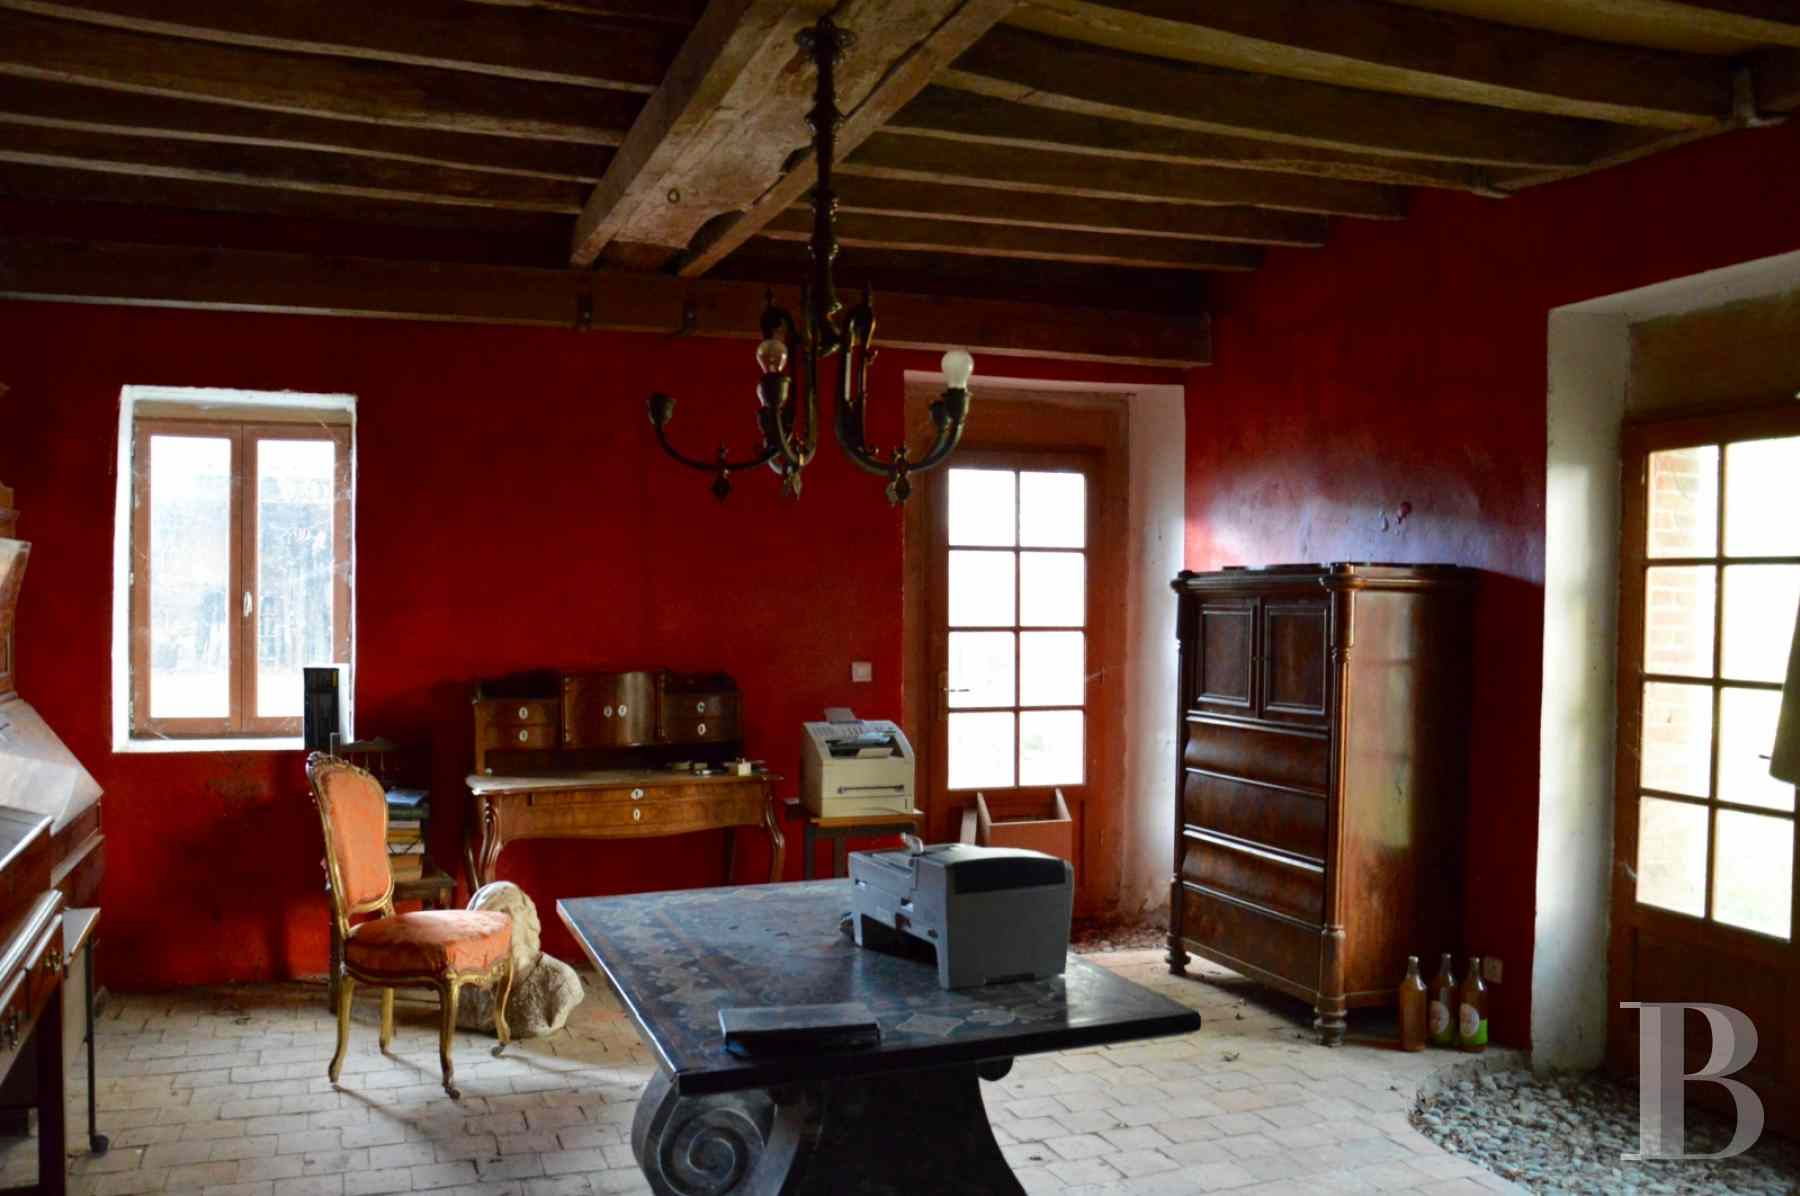 chateaux for sale France pays de loire manor house - 10 zoom